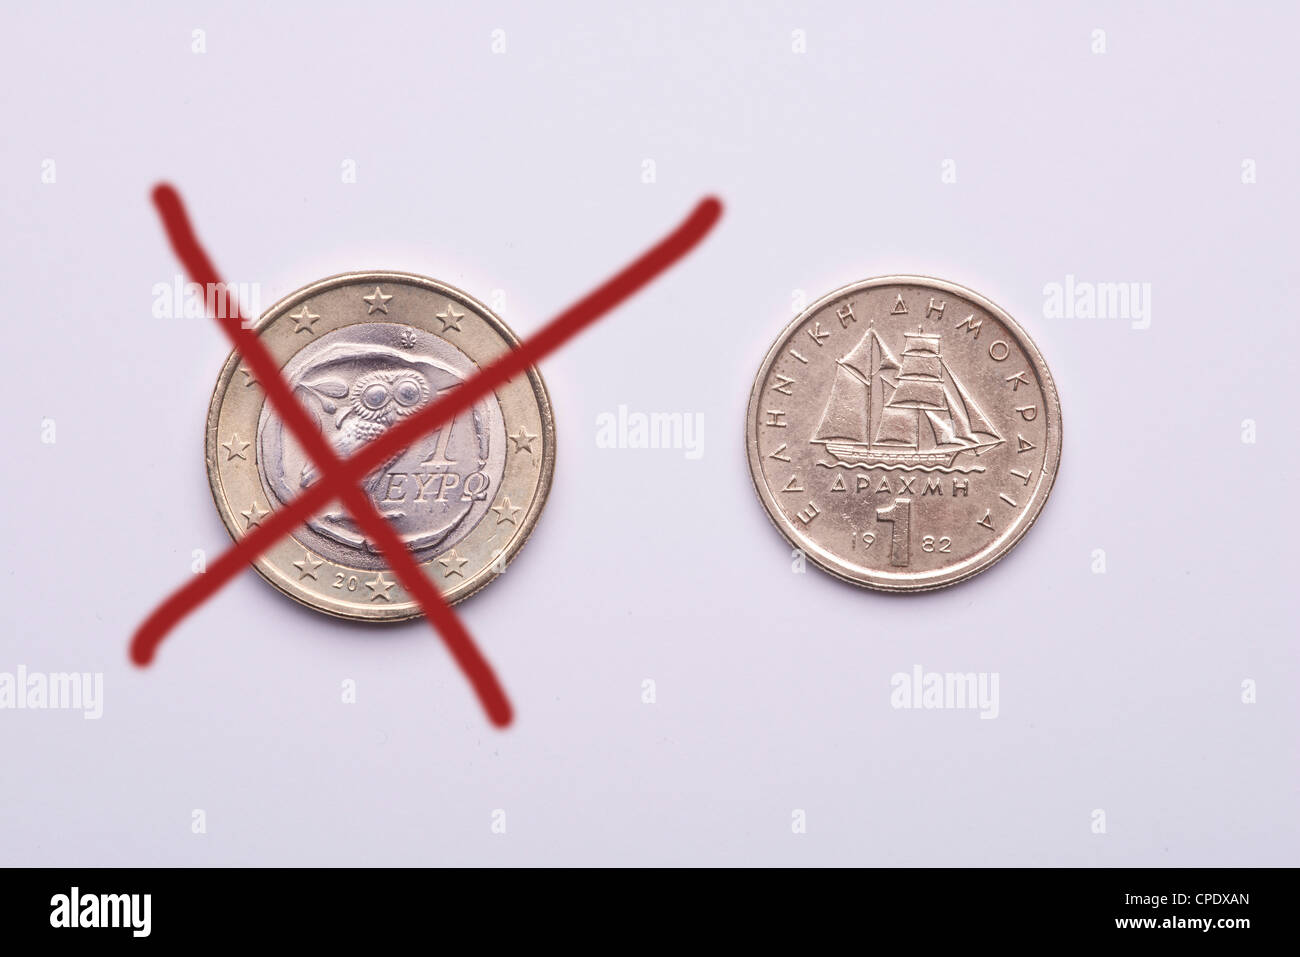 Economic crisis in Greece, the future of euro. the passage at dracma currency. Stock Photo